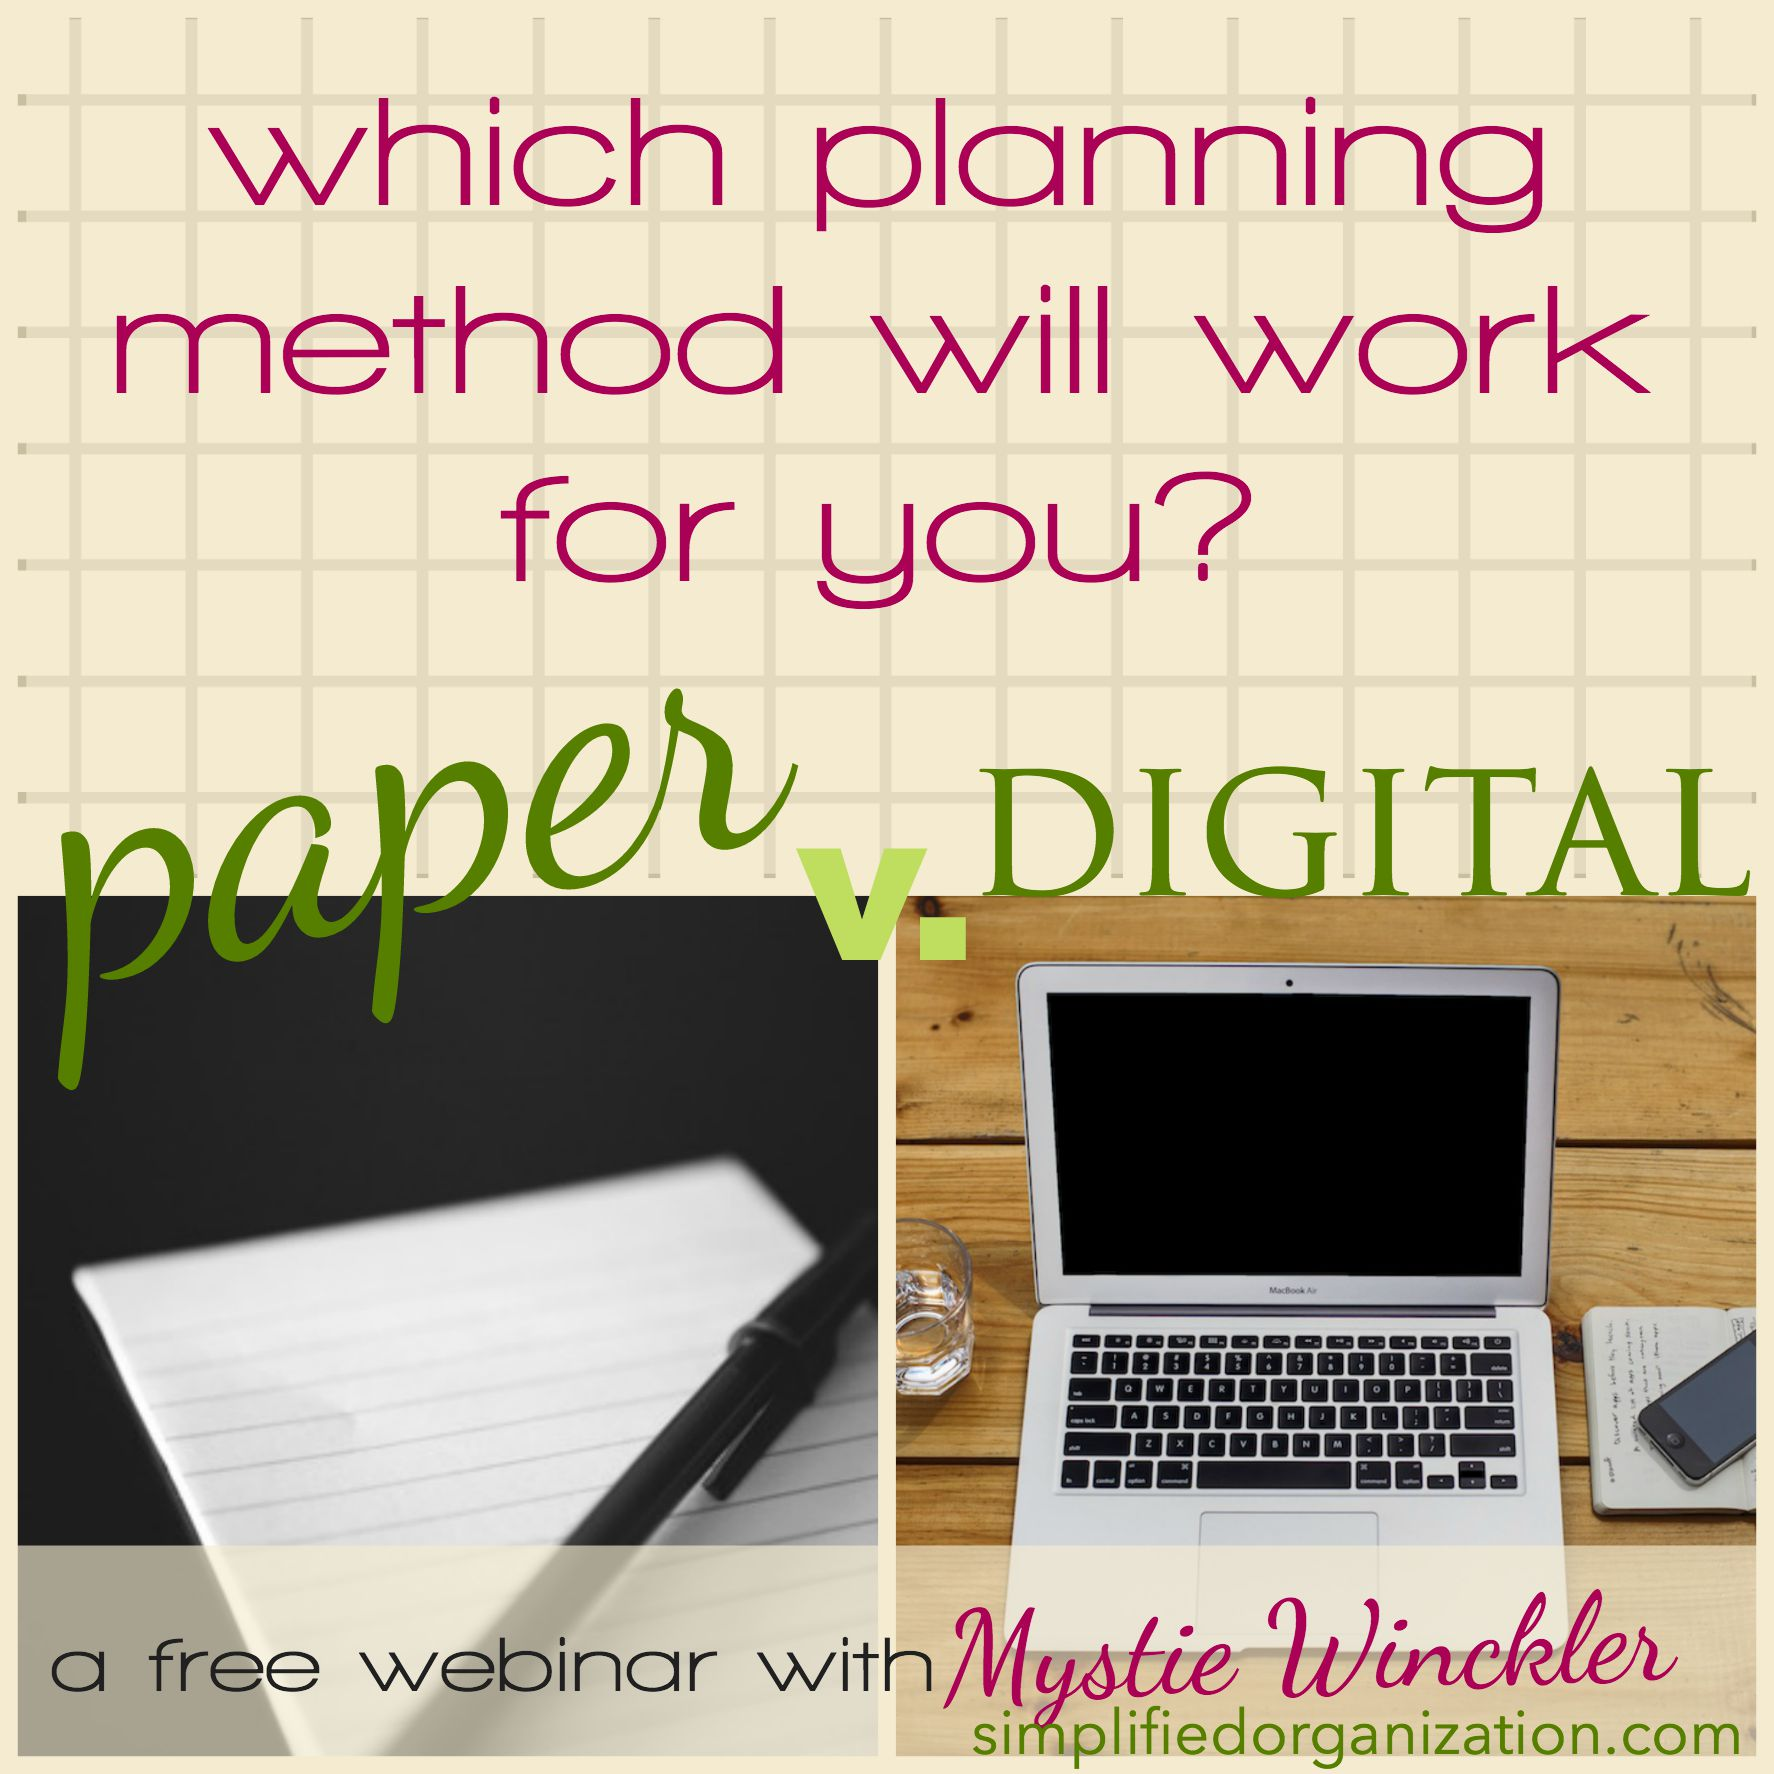 Let's have a chat over what planning methods work for you, whether it's paper, digital or a hybrid. You can customize any system to fit!